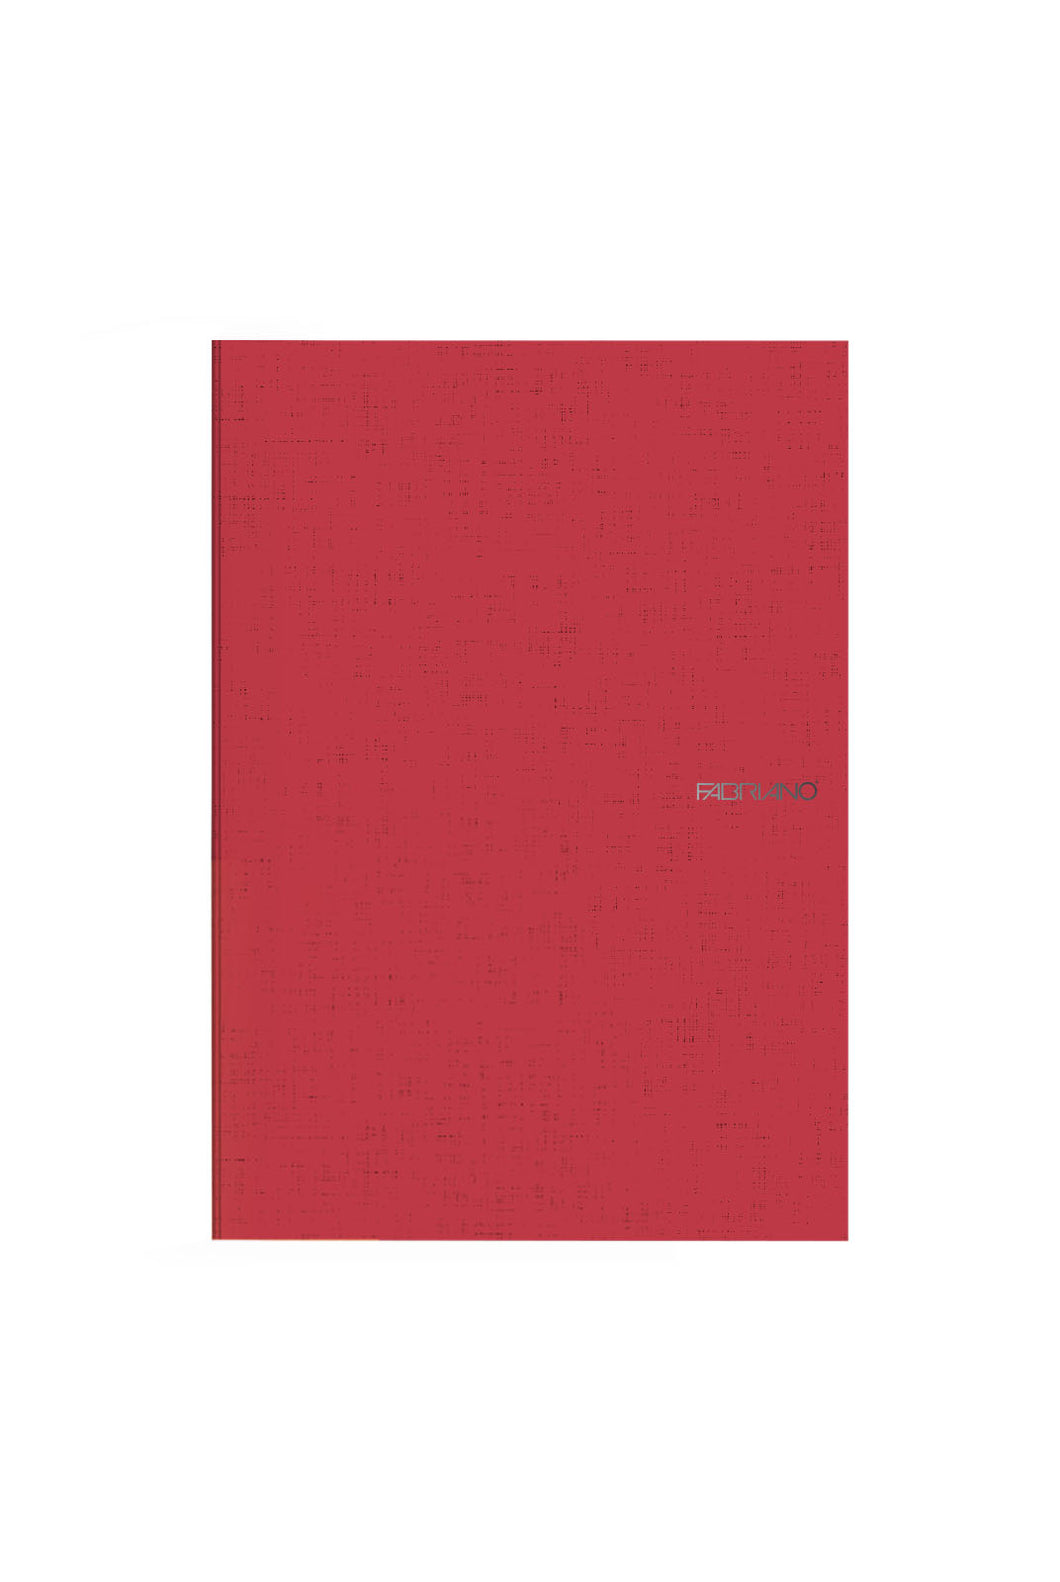 Fabriano Boutique - EcoQua Plus Notebook - Ruled - A4 (21x29.7cm) - Red